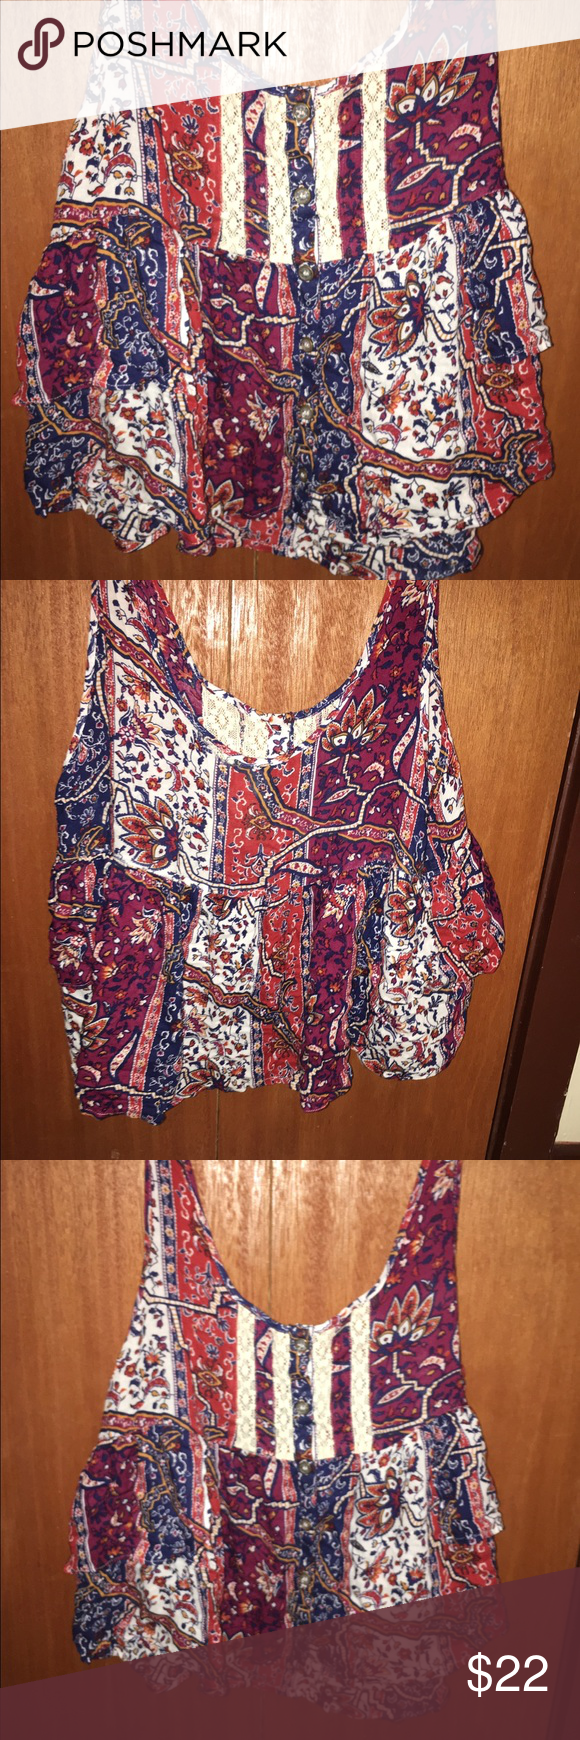 Cropped blouse Gorgeous colors and pattern! Great condition! Tops Crop Tops